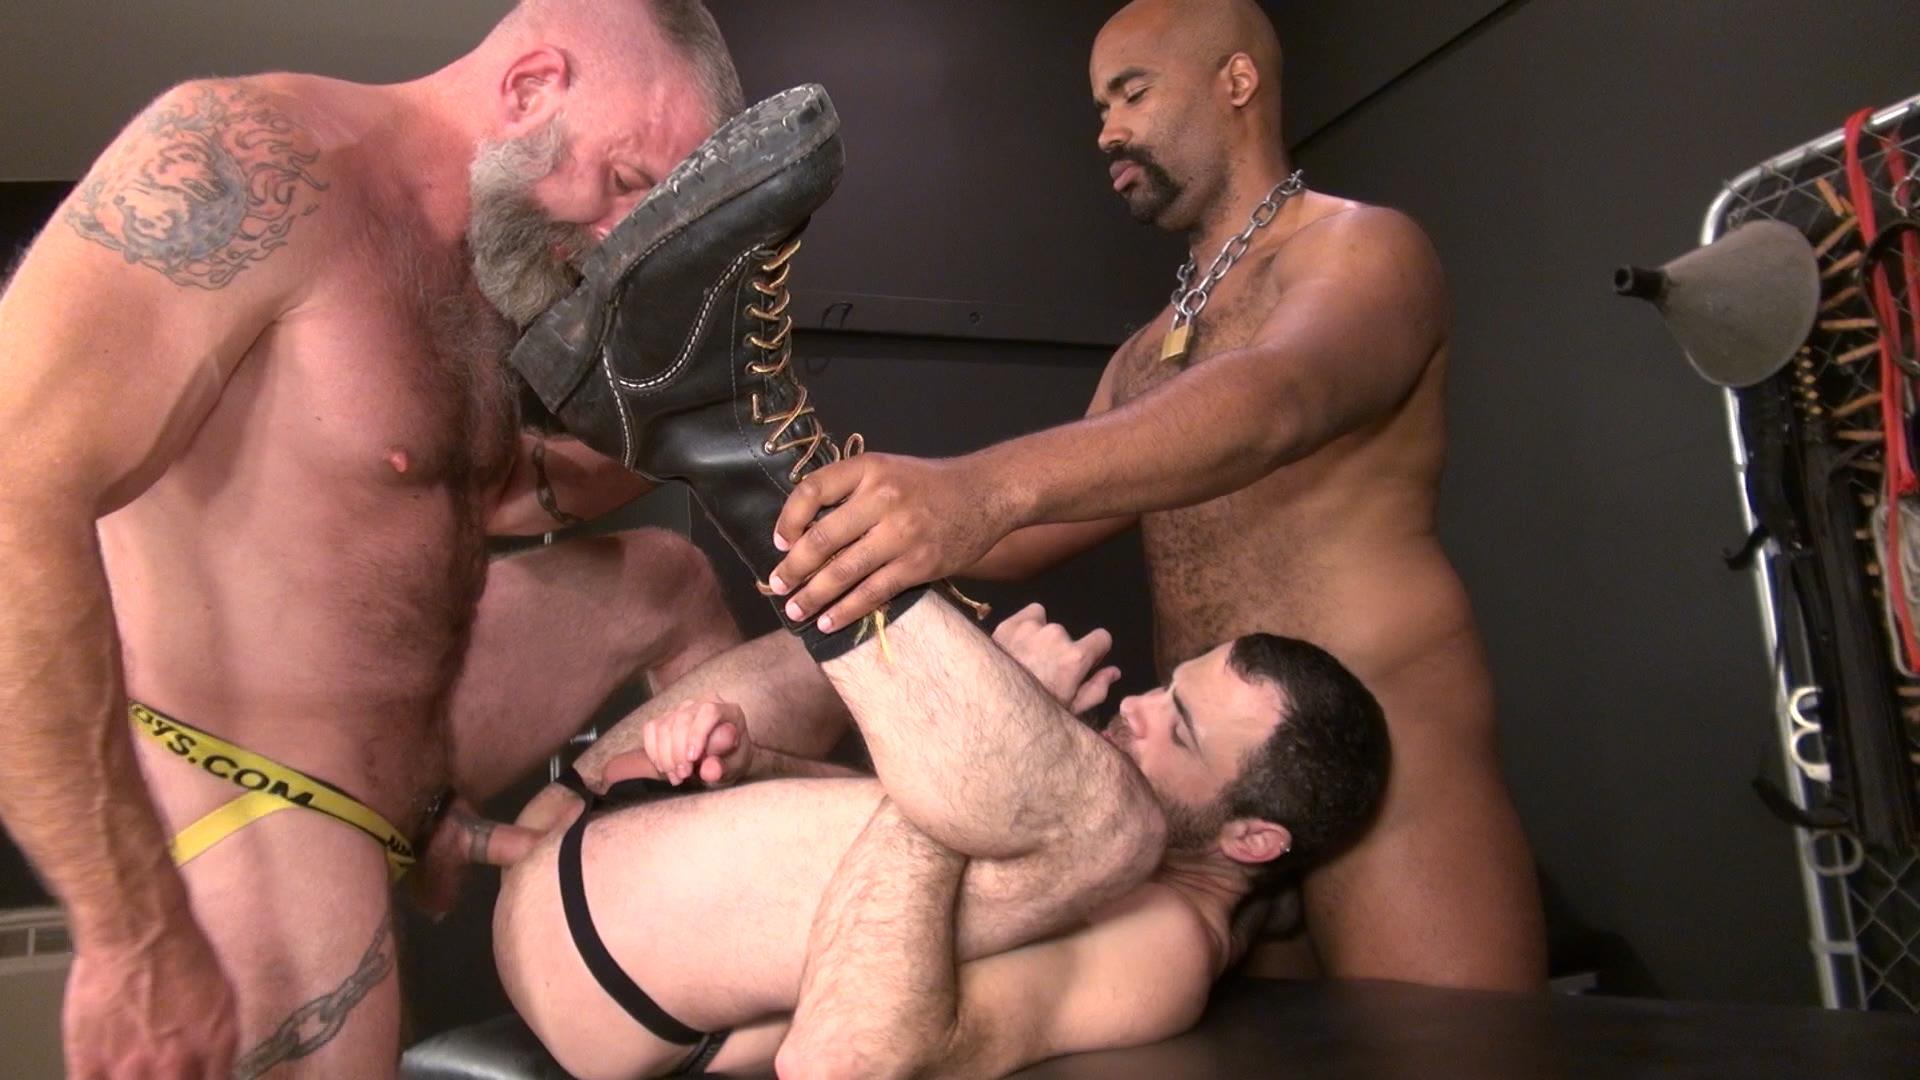 Raw-and-Rough-Jake-Wetmore-and-Dusty-Williams-and-Kid-Satyr-Bareback-Taking-Raw-Daddy-Loads-Cum-Amateur-Gay-Porn-04 Hairy Pup Taking Raw Interracial Daddy Loads Bareback